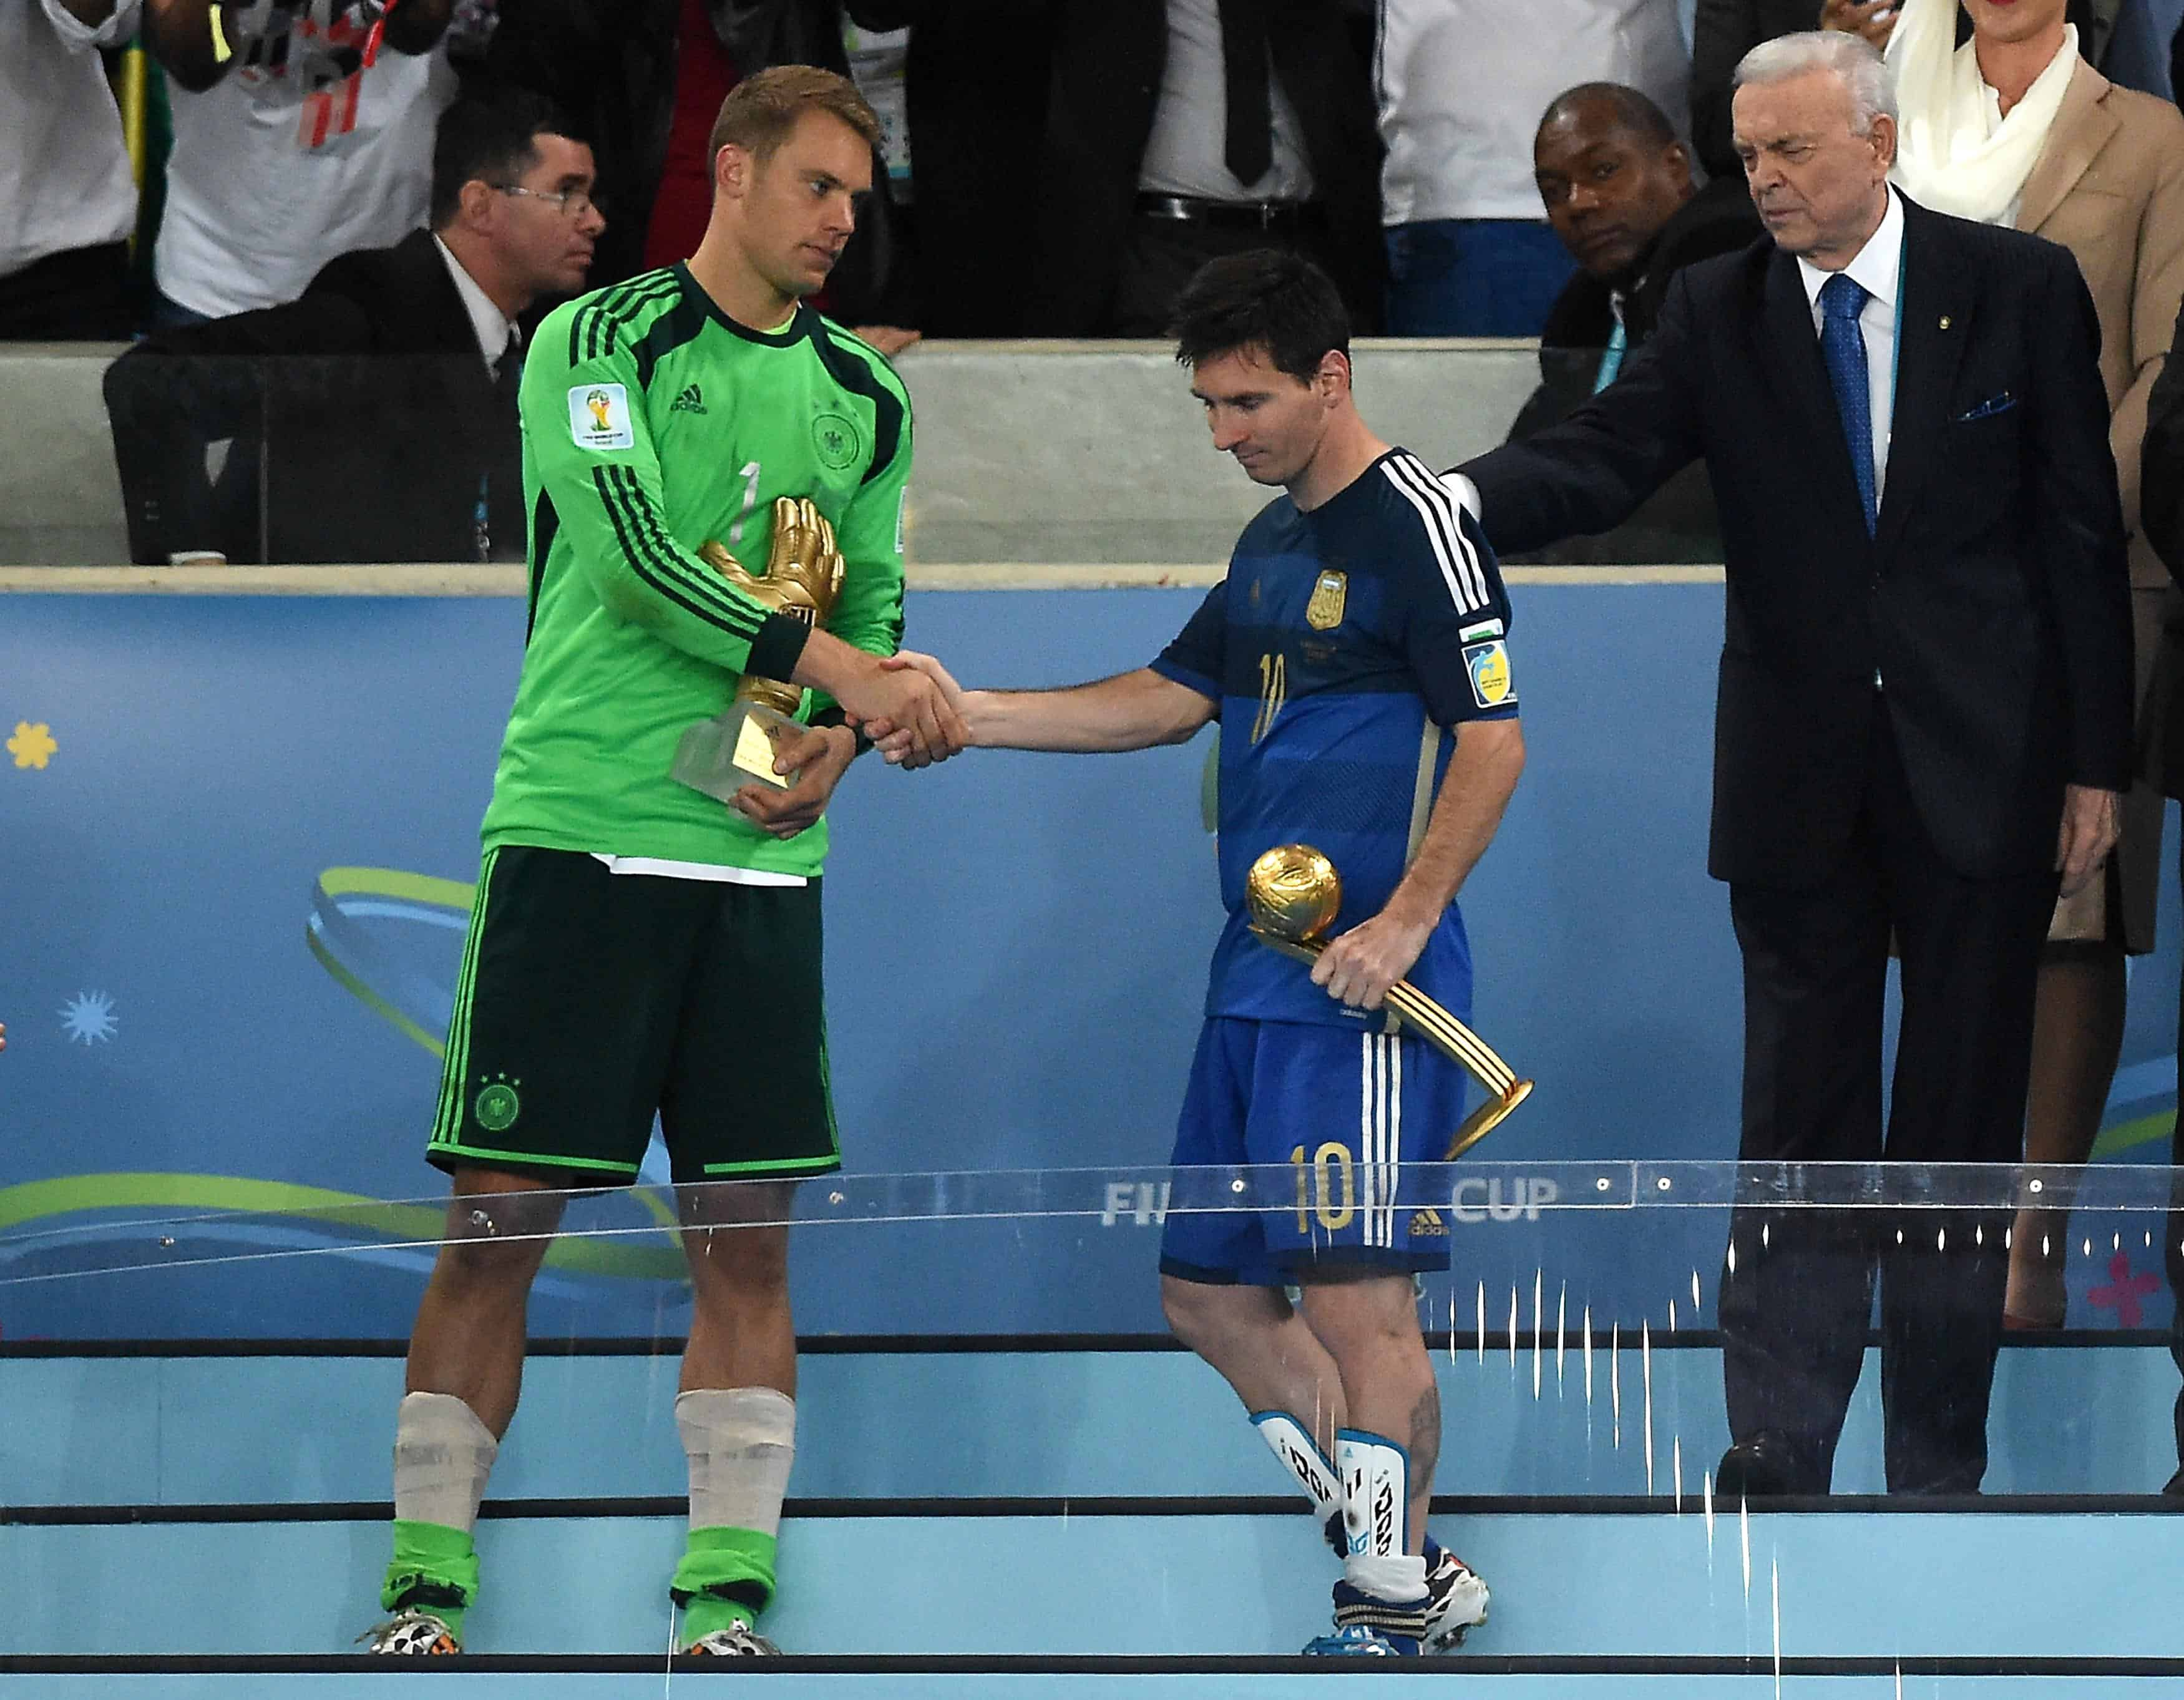 outlet store 585b2 a990e Germany's Manuel Neuer beats Costa Rica's Keylor Navas for ...